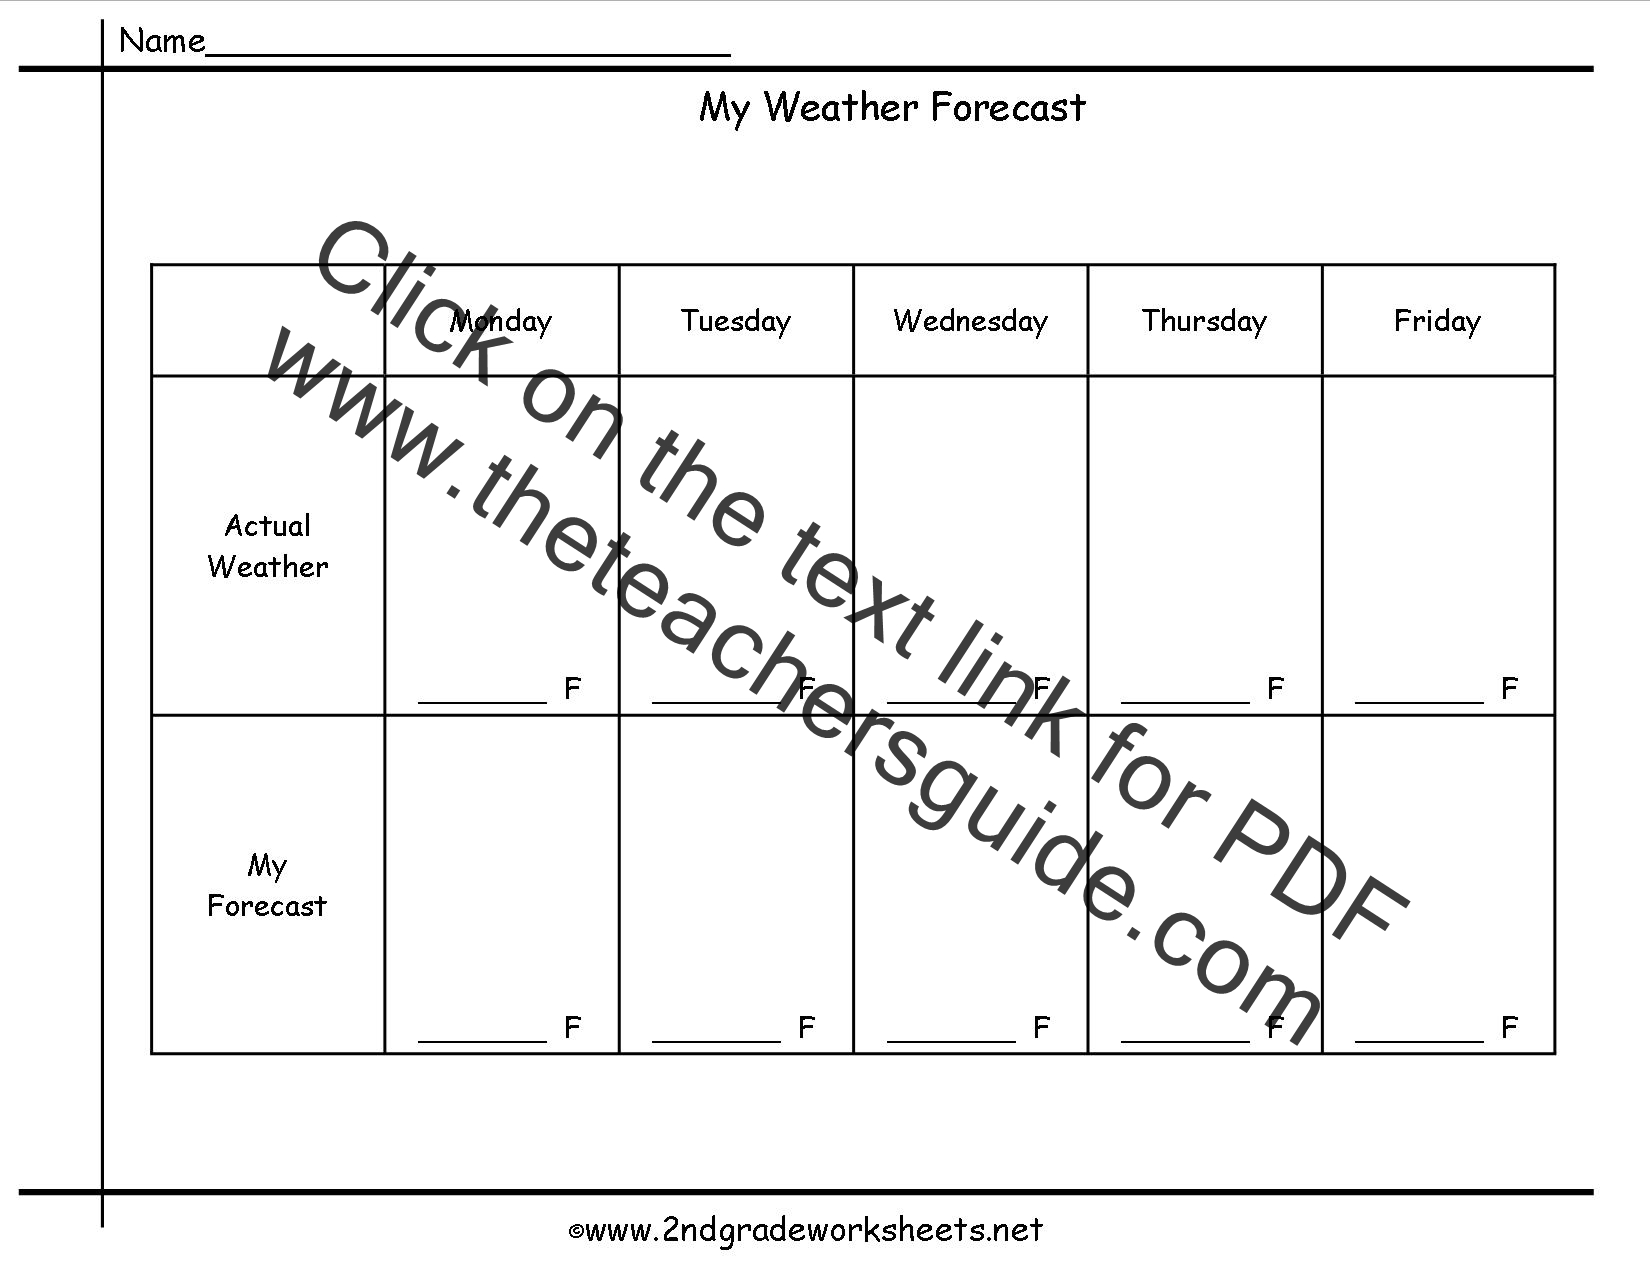 30 Forecasting The Weather Worksheet